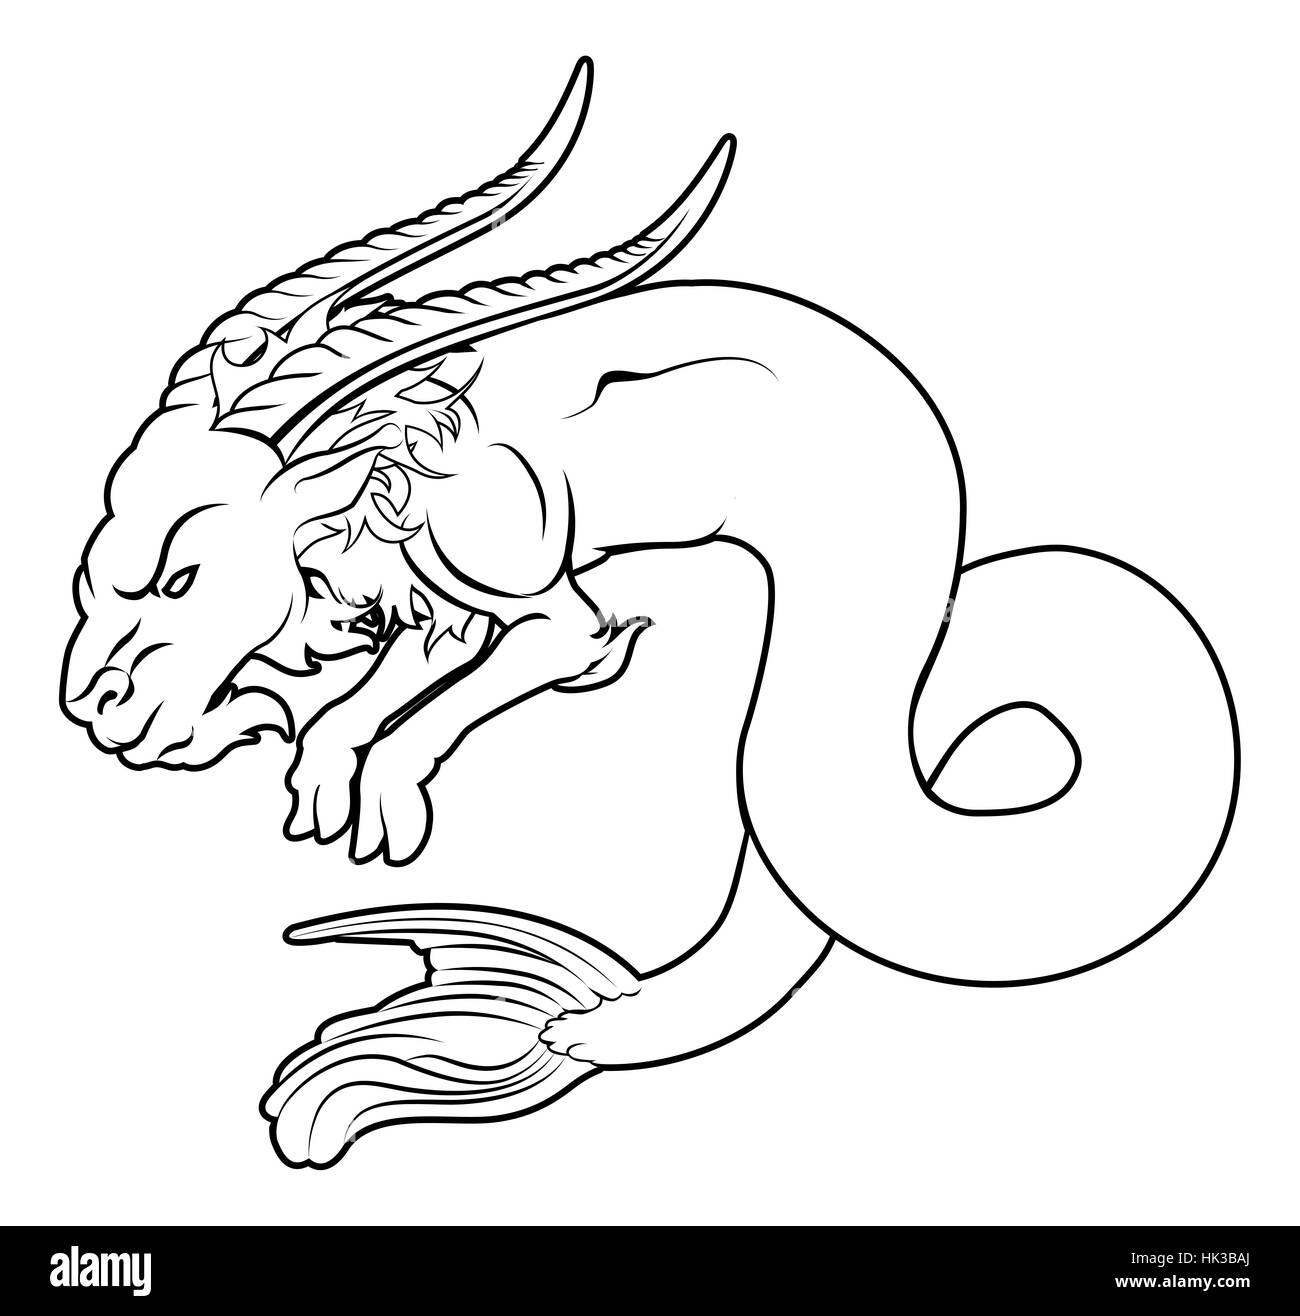 An illustration of a stylised black sea goat perhaps a sea goat tattoo - Stock Image